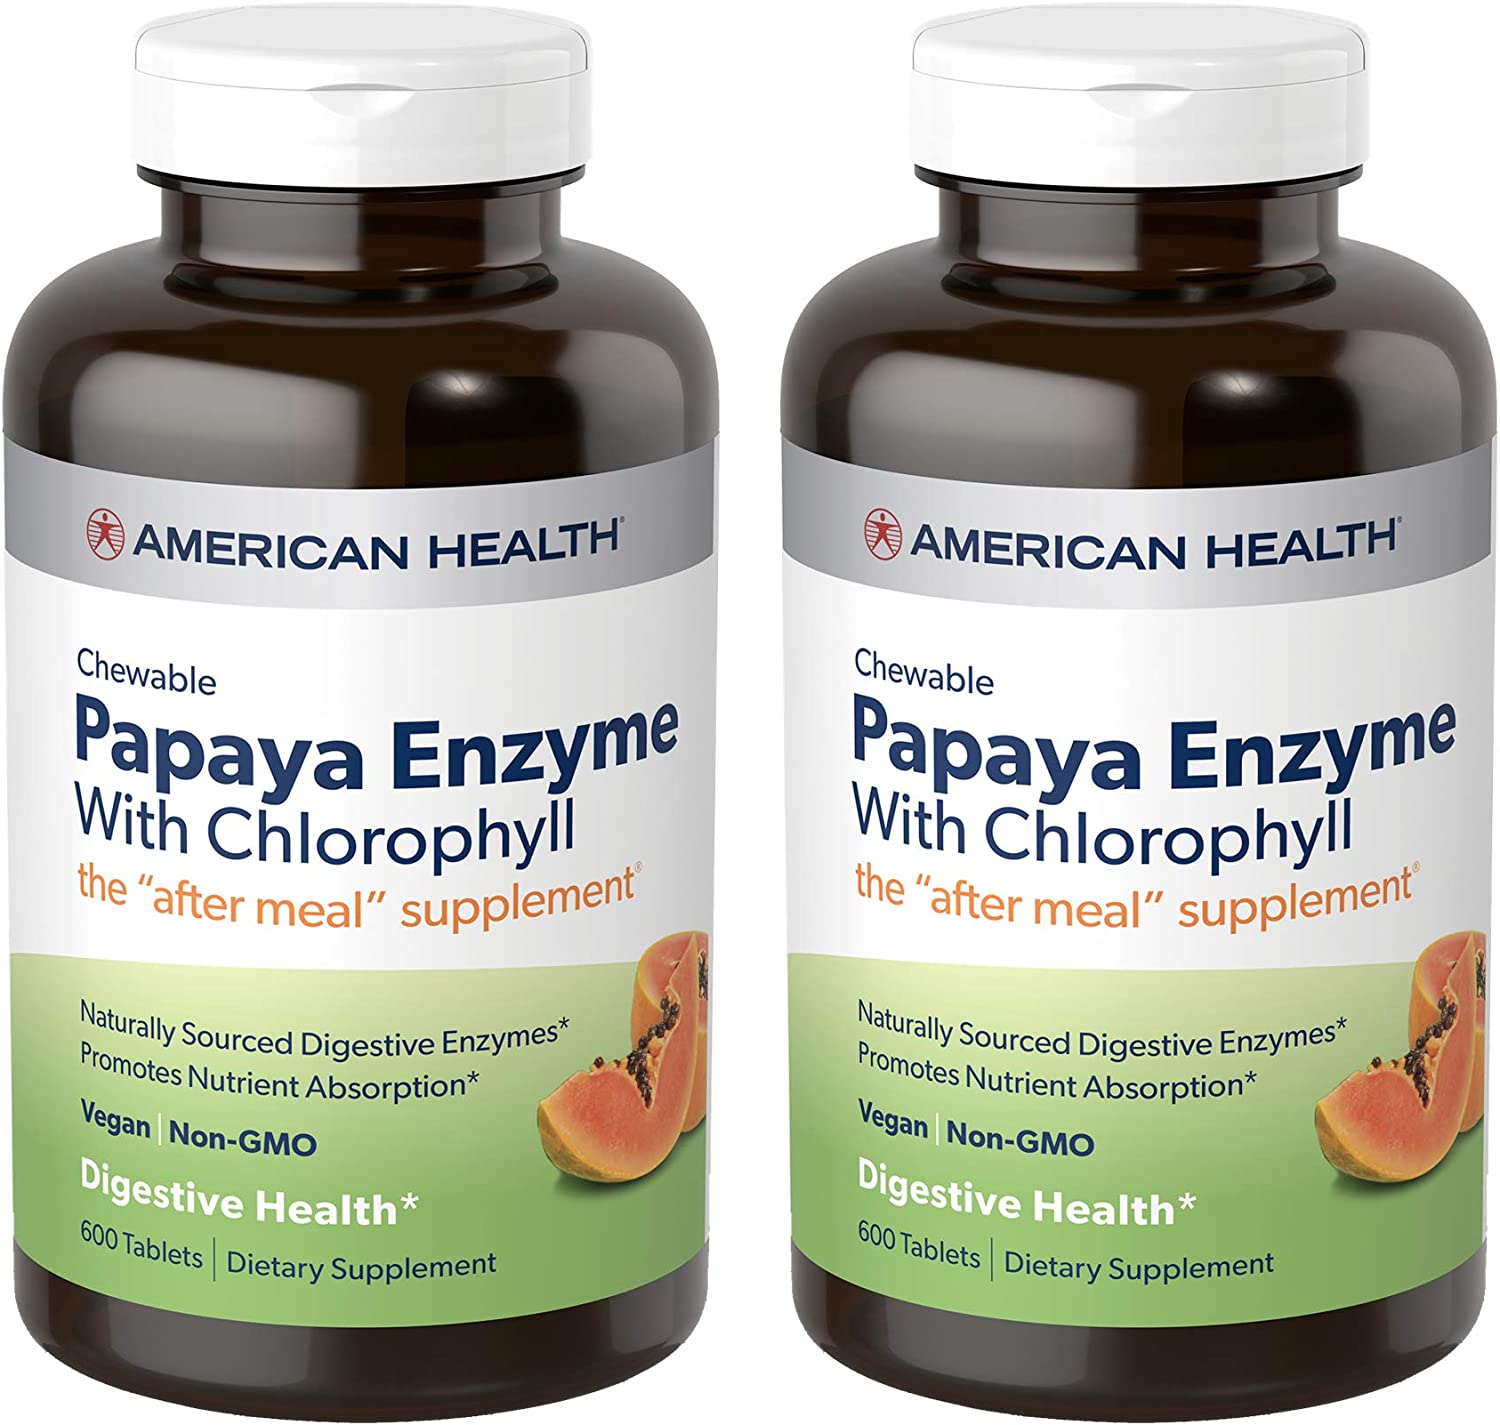 American Health Papaya Enzyme with Chlorophyll Chewable Tablets, 2 Pack - Promotes Nutrient Absorption, Helps Digestion and Freshens Breath - Gluten-Free, Vegetarian - 600 Tablets, 400 Total Servings